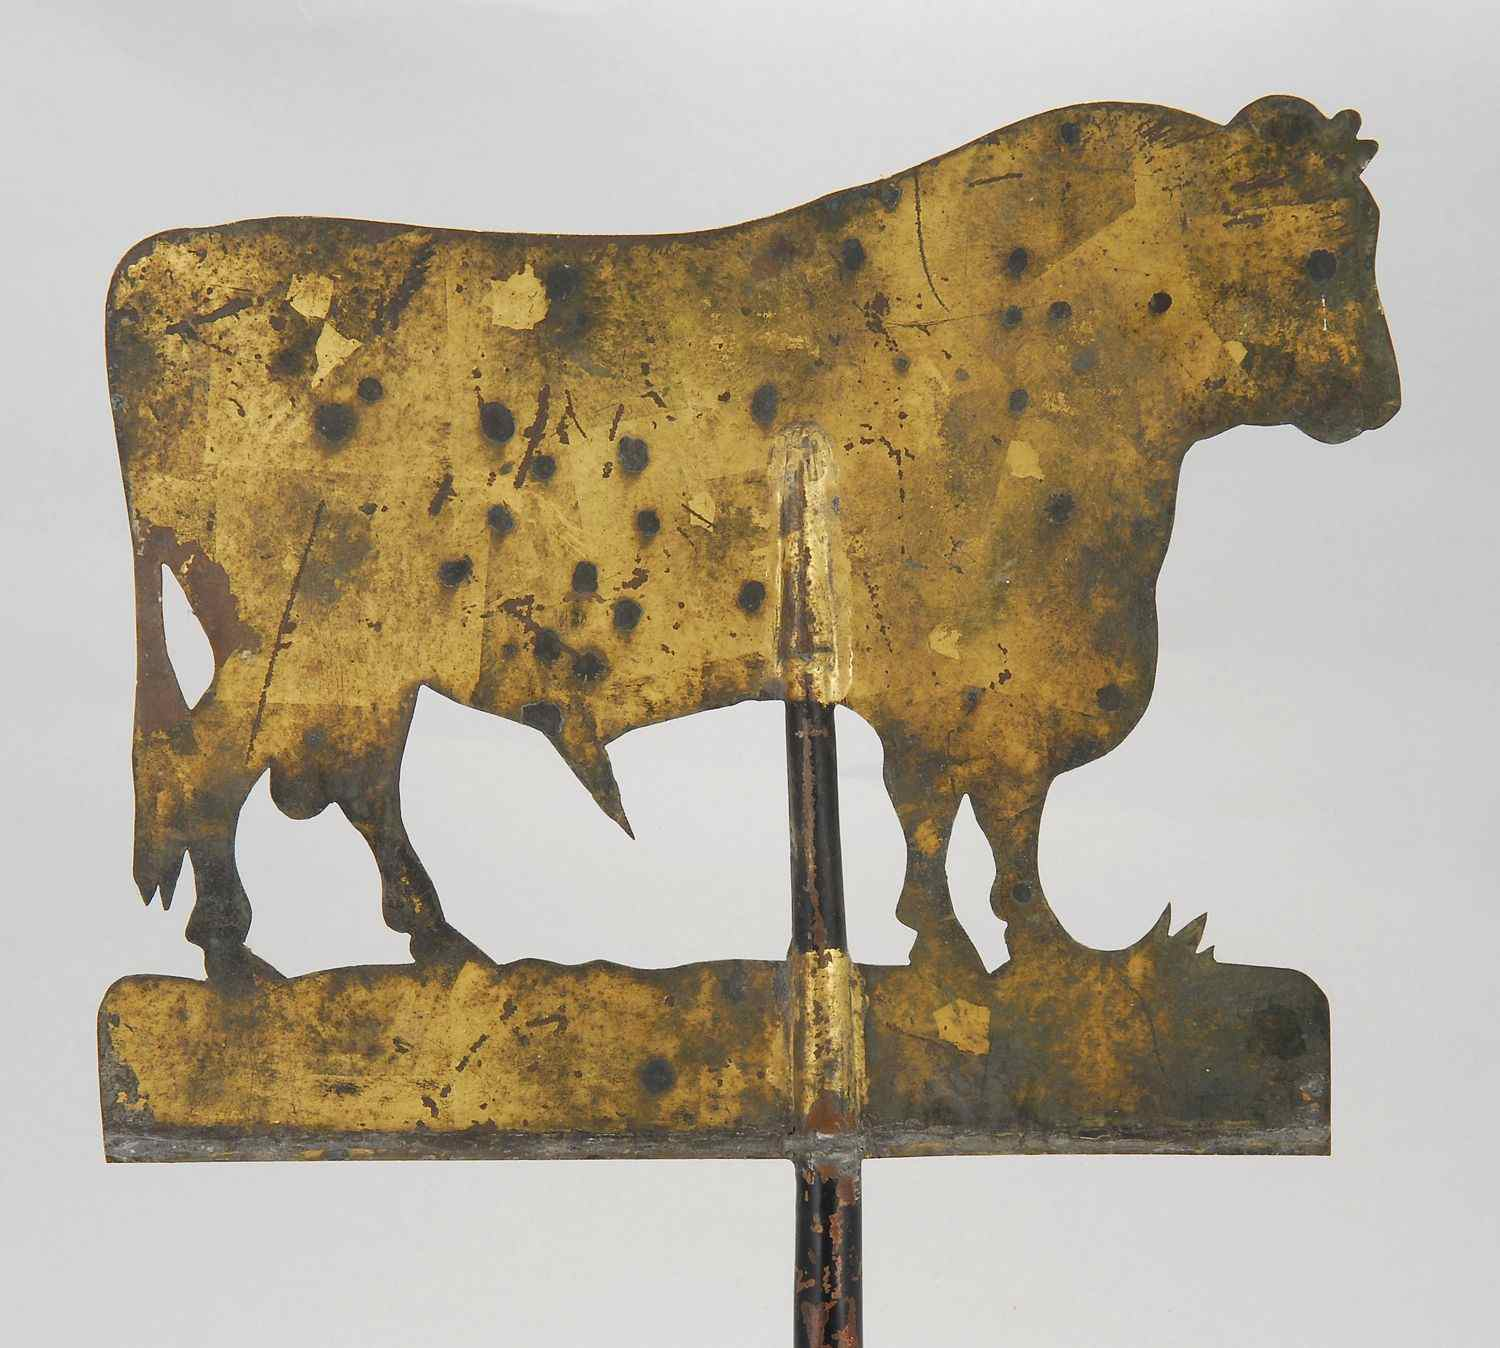 SHEET METAL COW-FORM WEATHER VANE19th CenturyWith